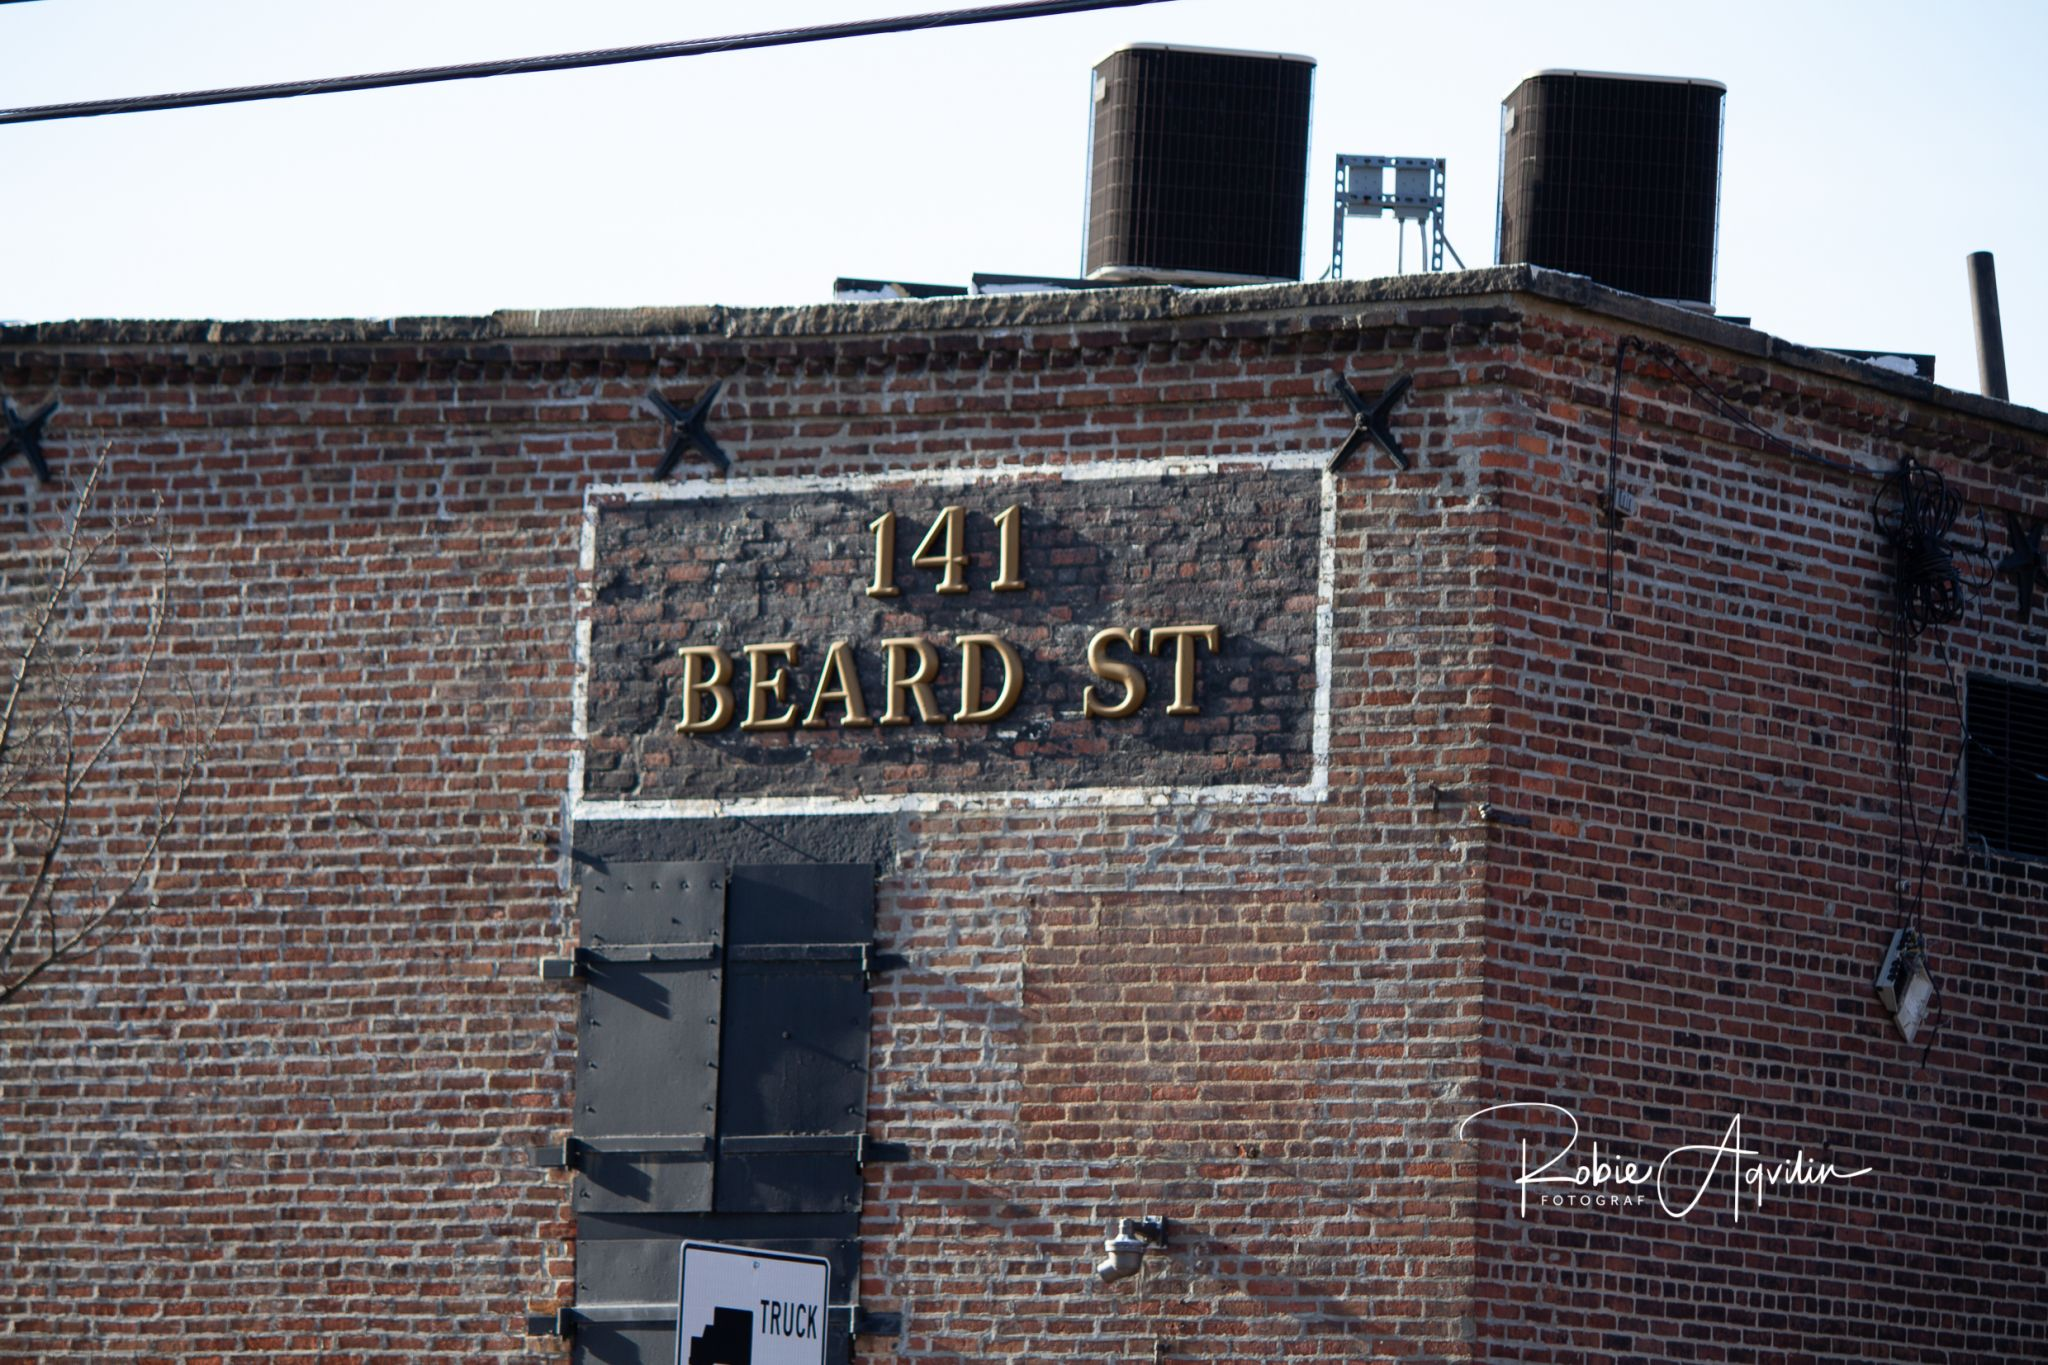 Red Hook, USA